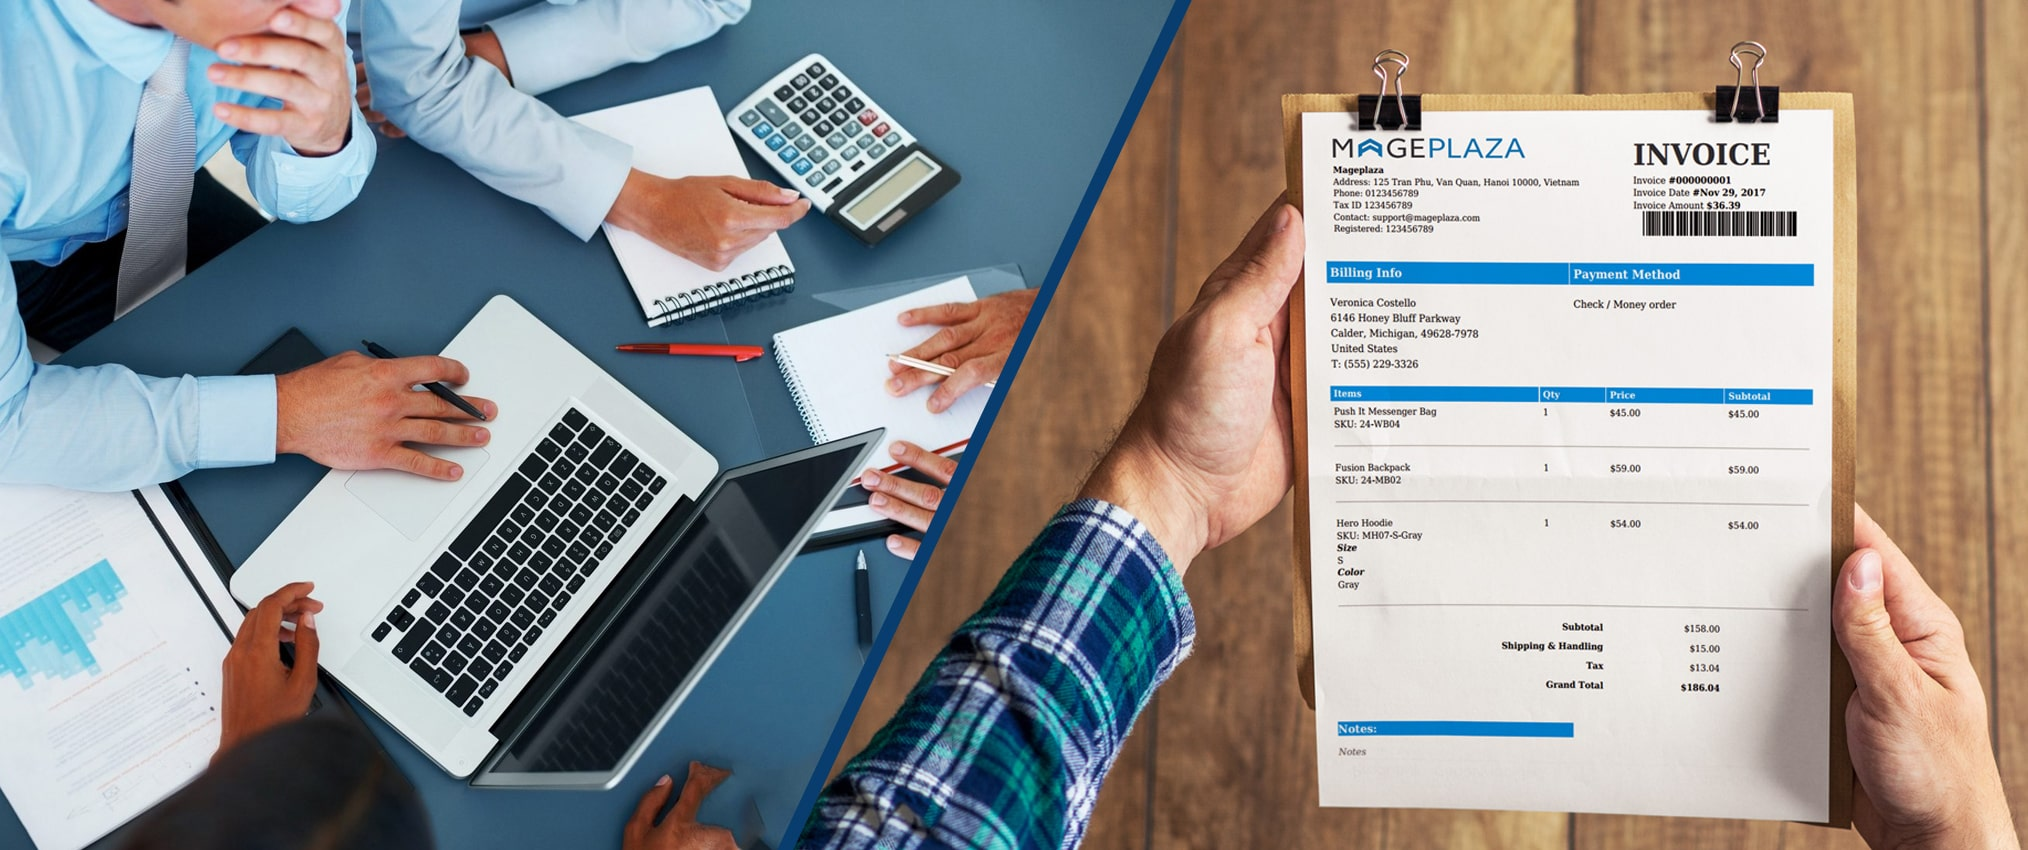 invoice-and-reciept-processing